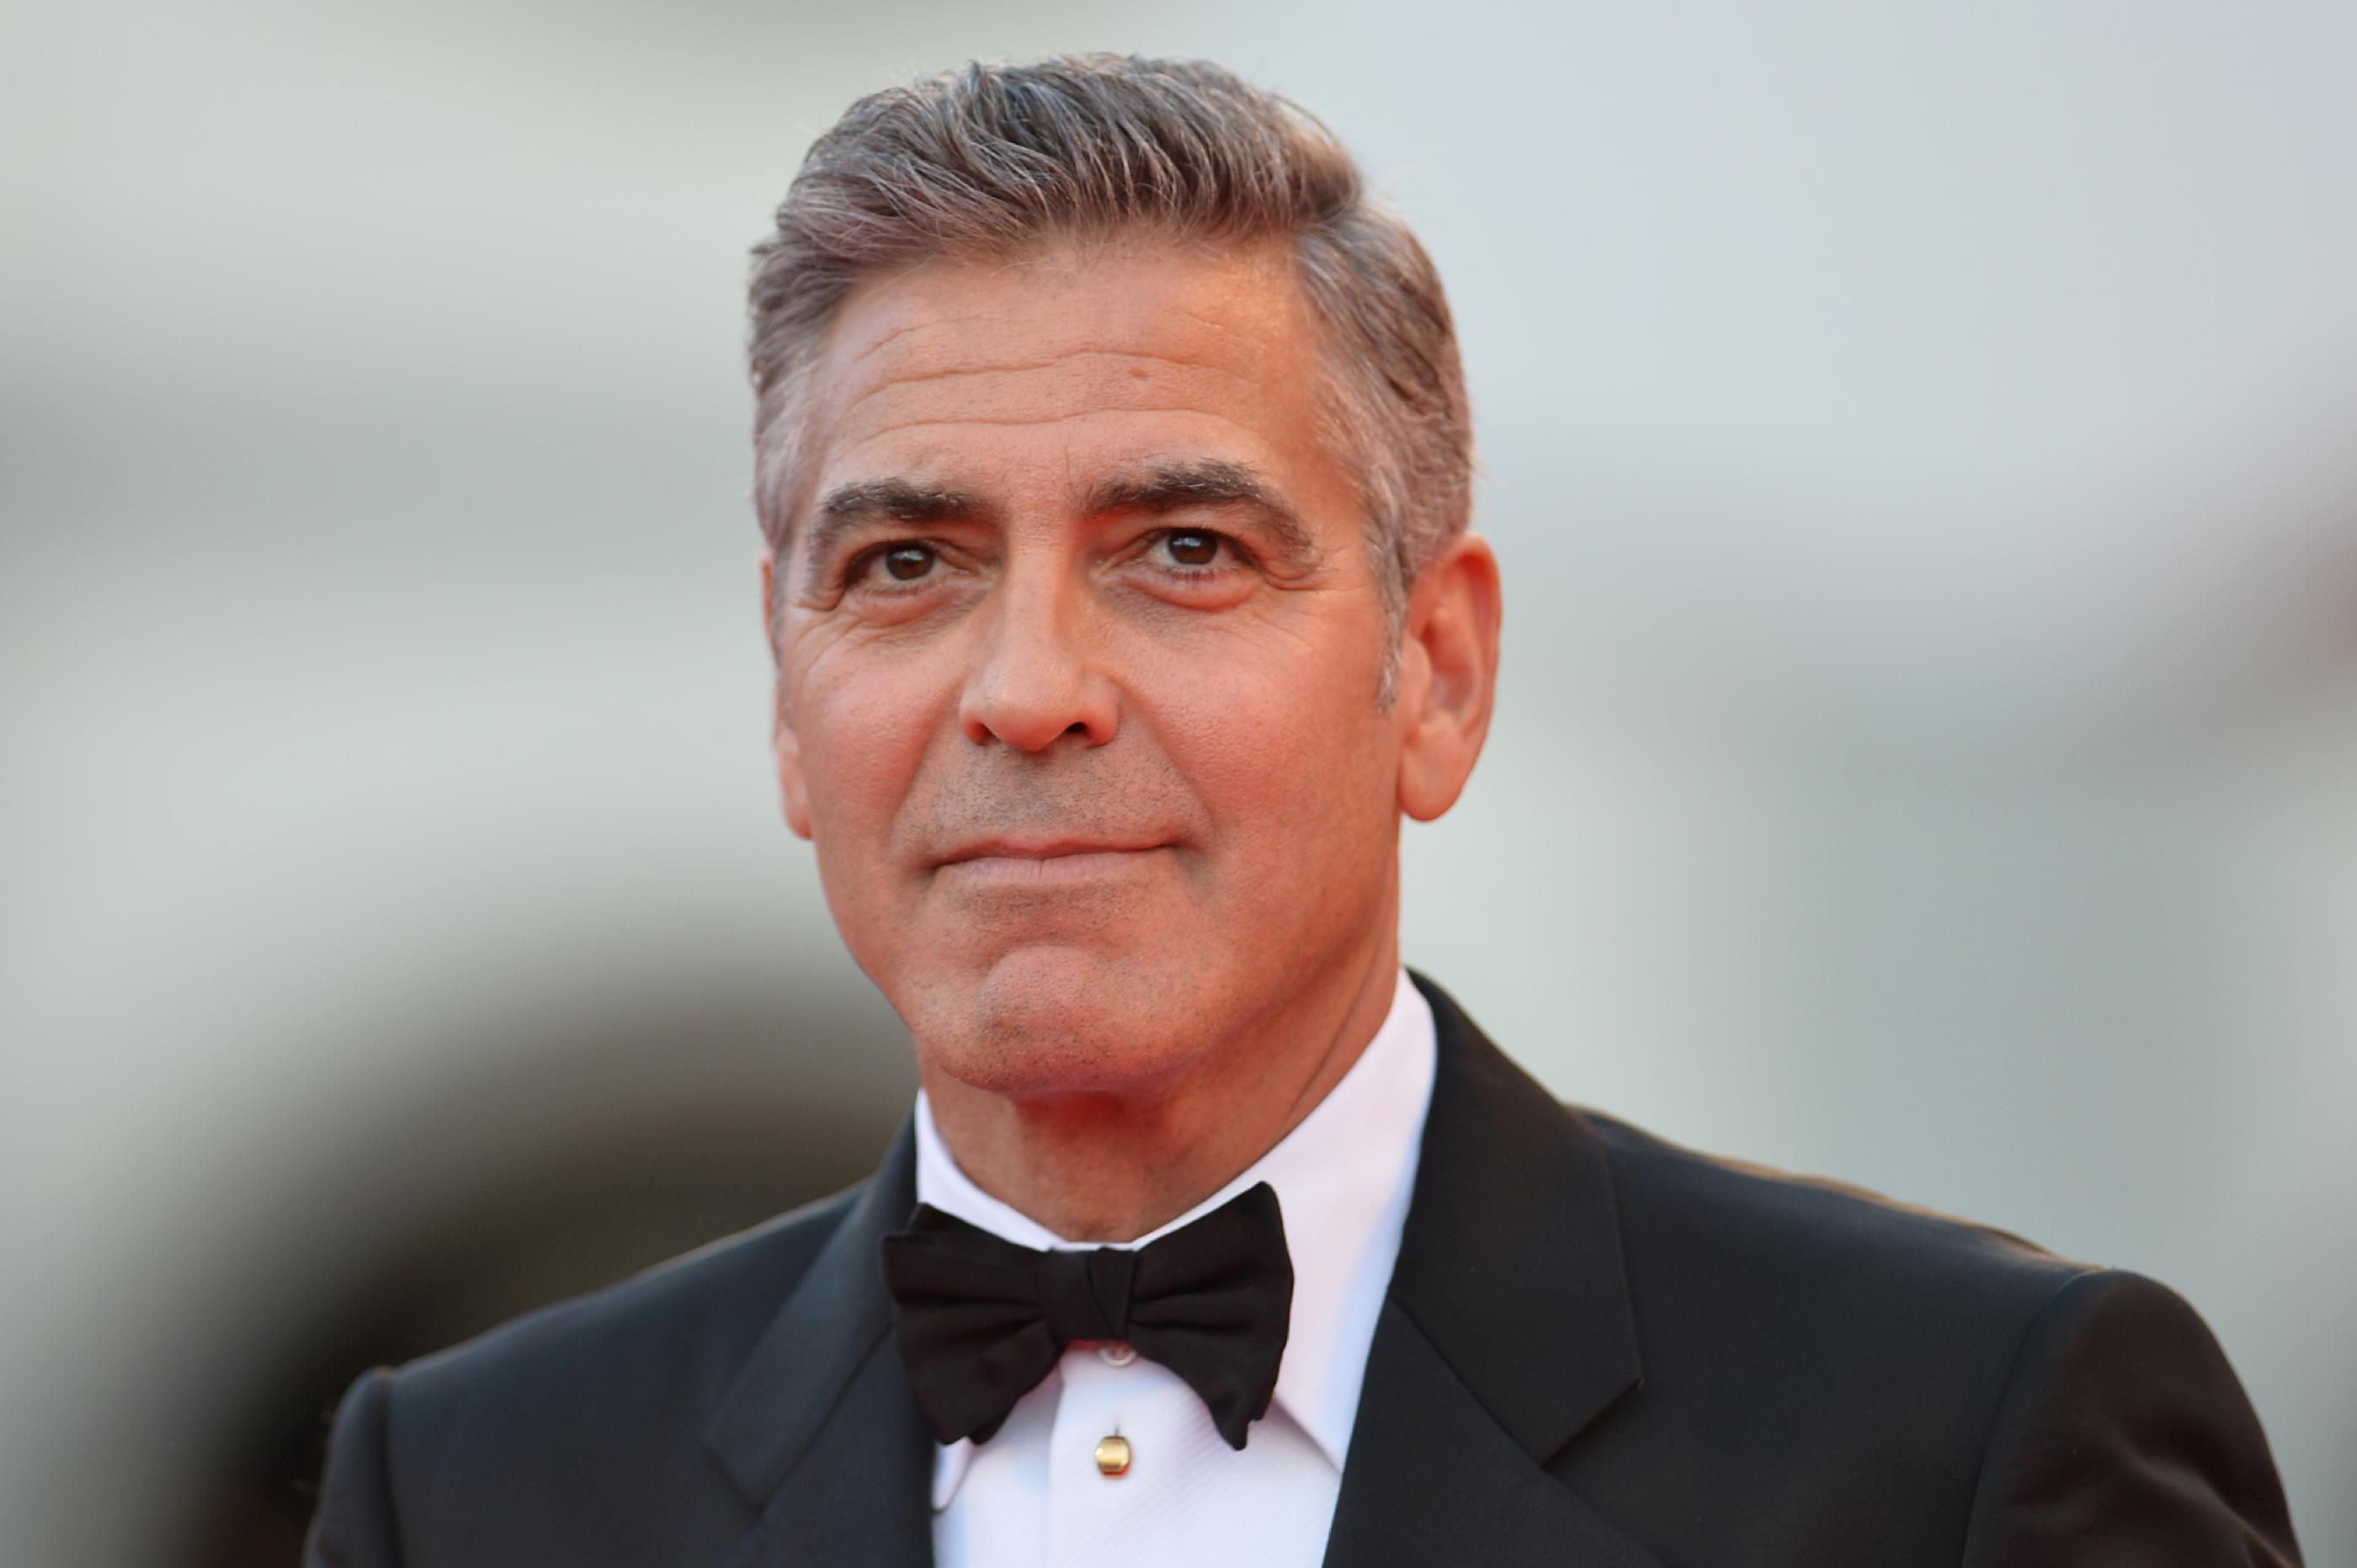 george clooney to develop film based on syrian rescuers